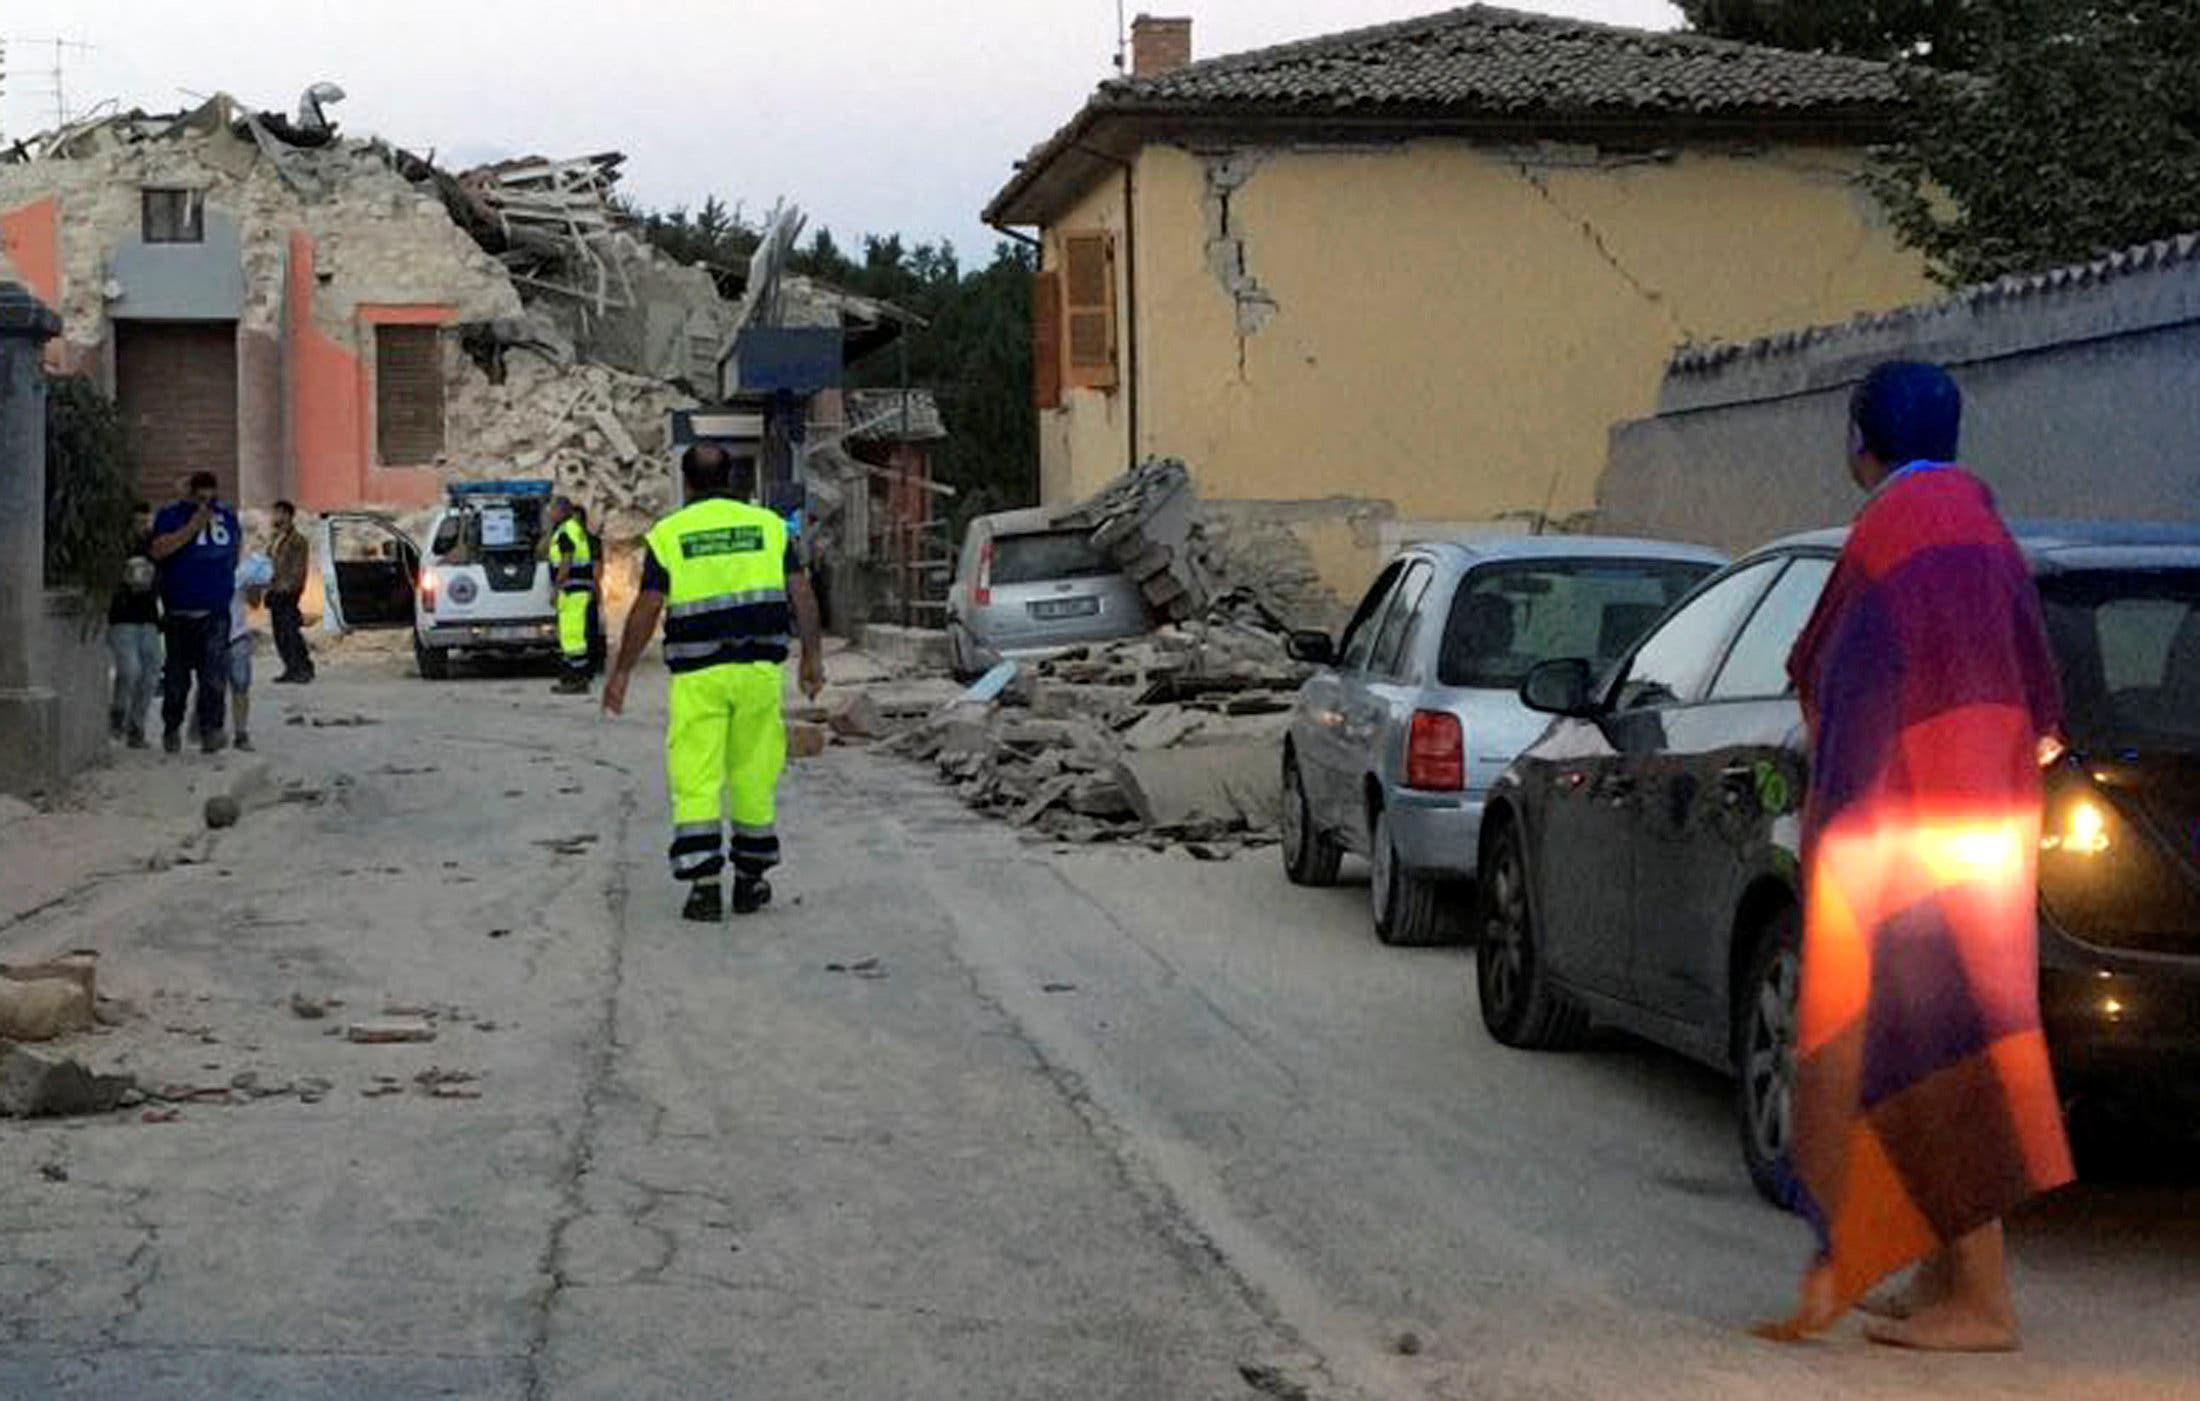 People stand along a road following a quake in Amatrice. (Reuters)